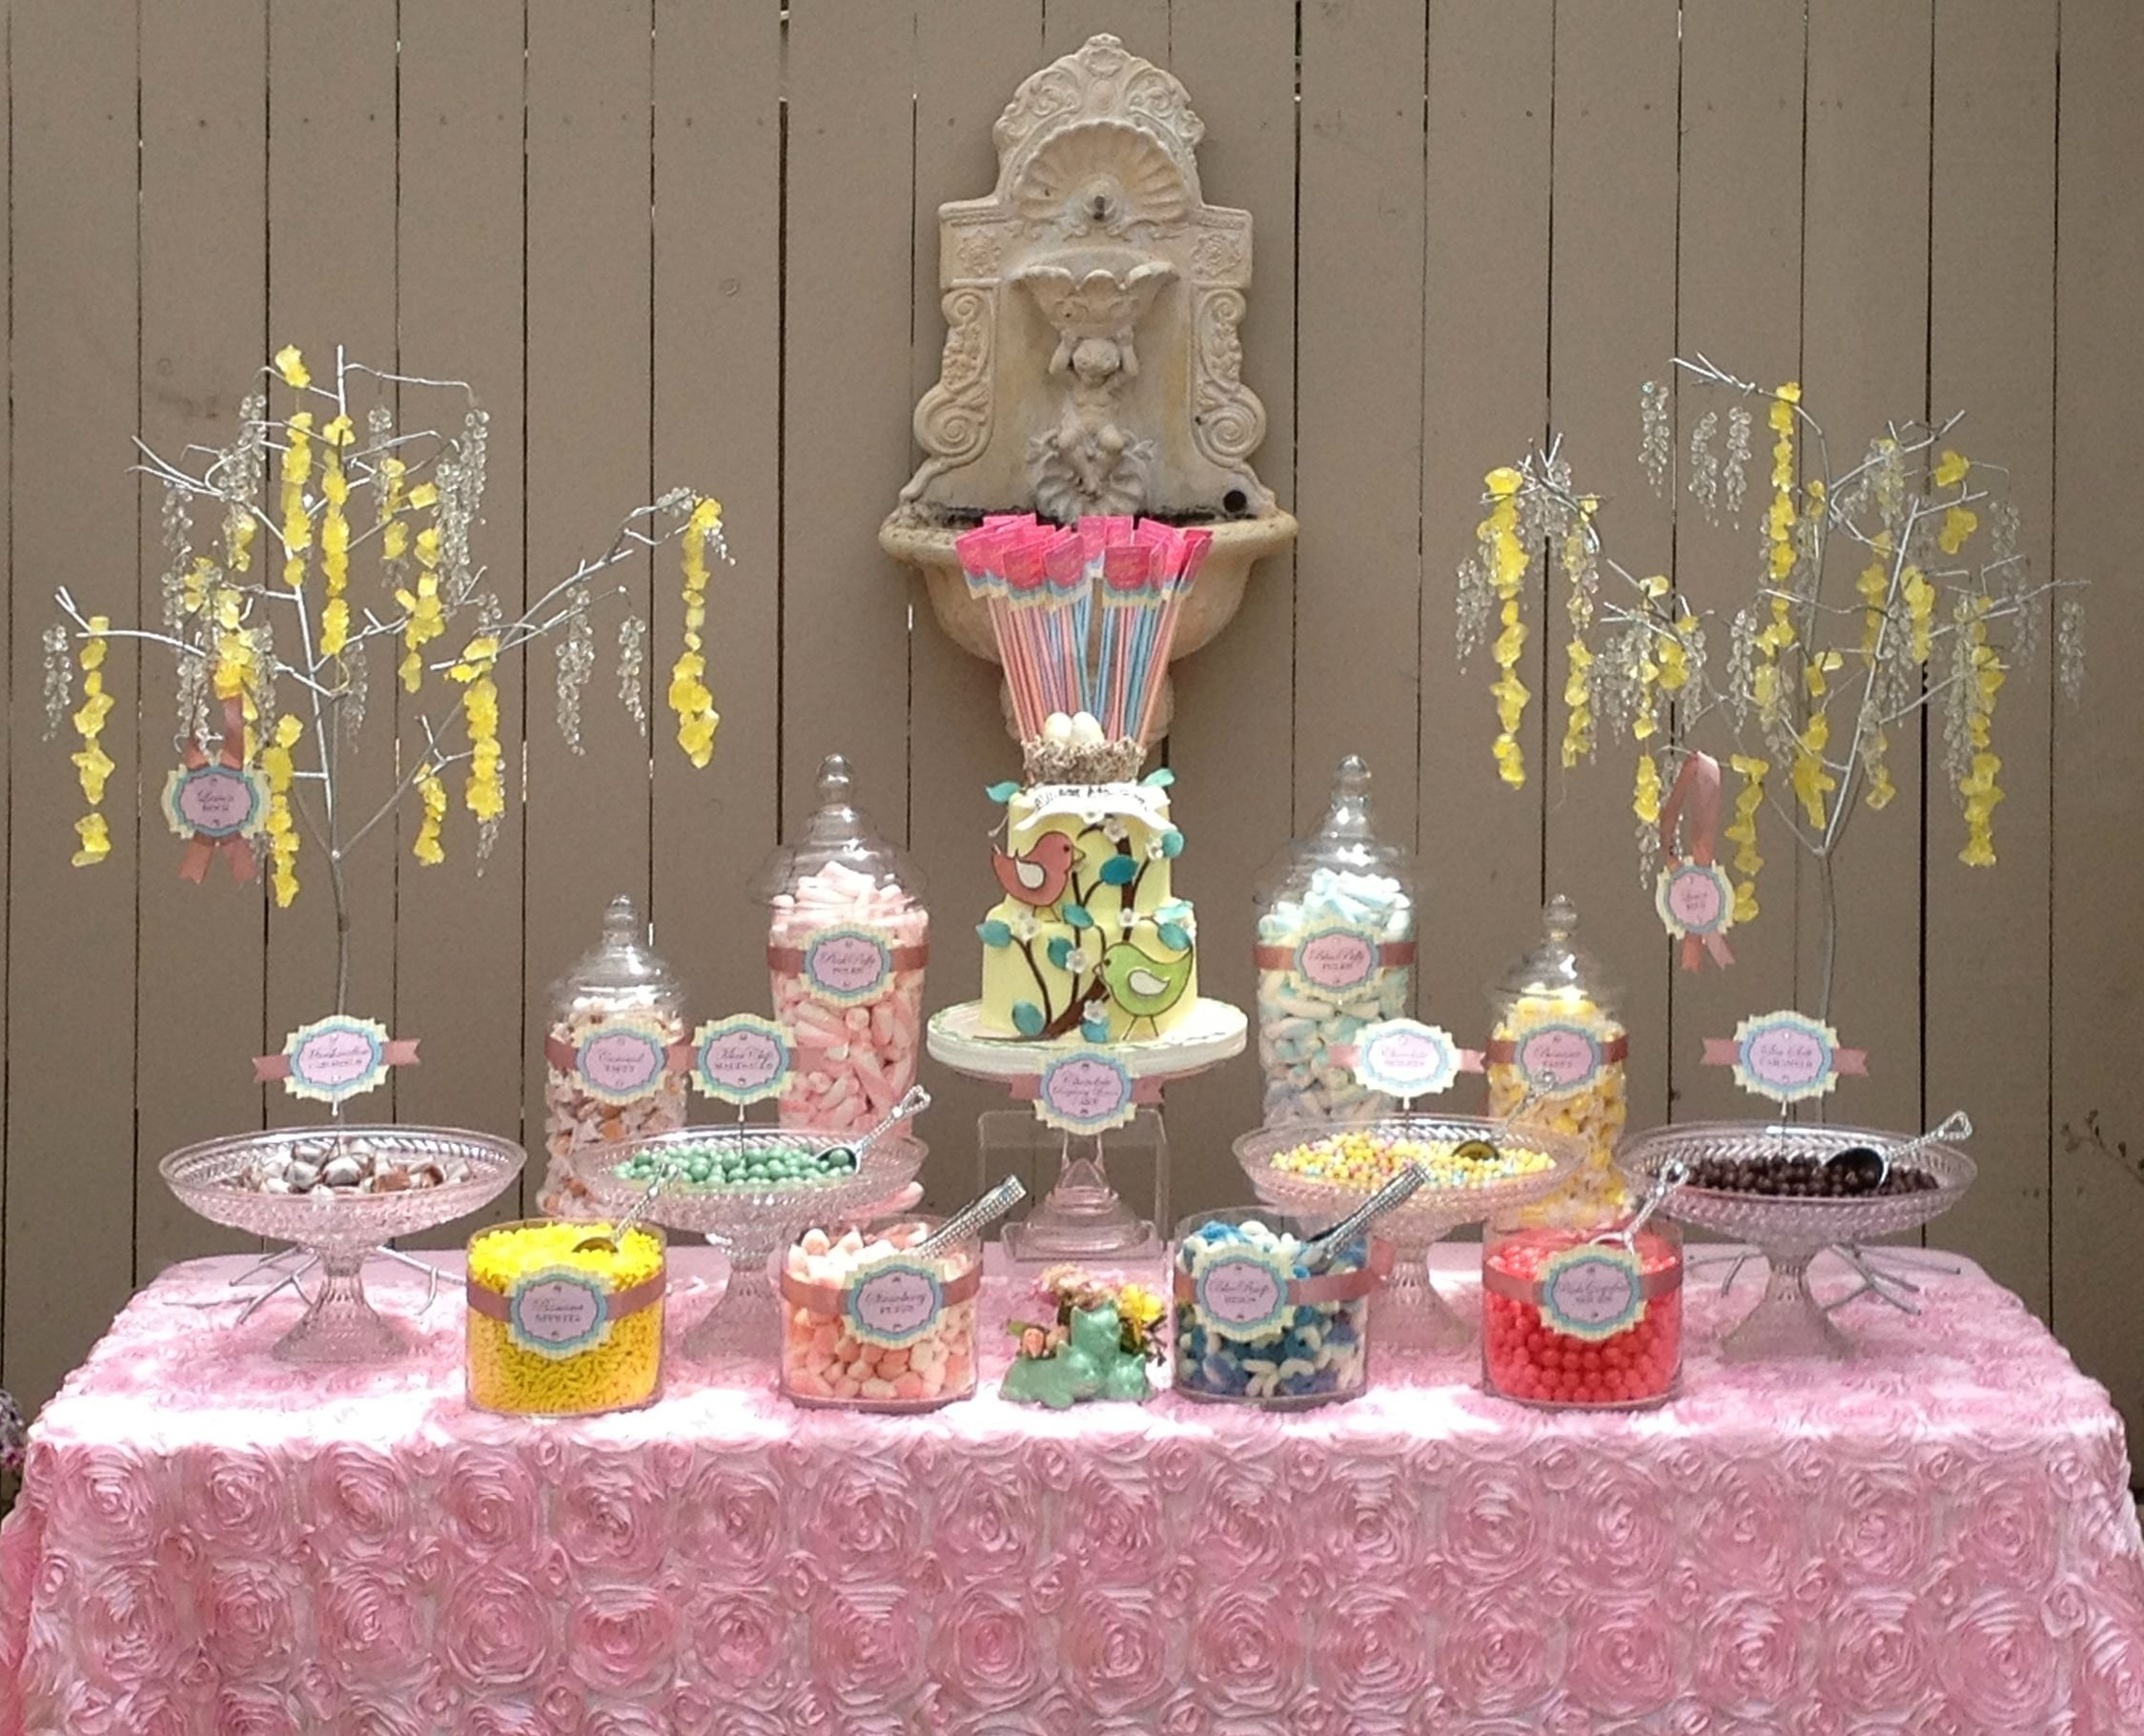 10 Elegant Baby Shower Candy Bar Ideas baby shower candy buffet ideas exceptional 1602753 orig boy table 2021